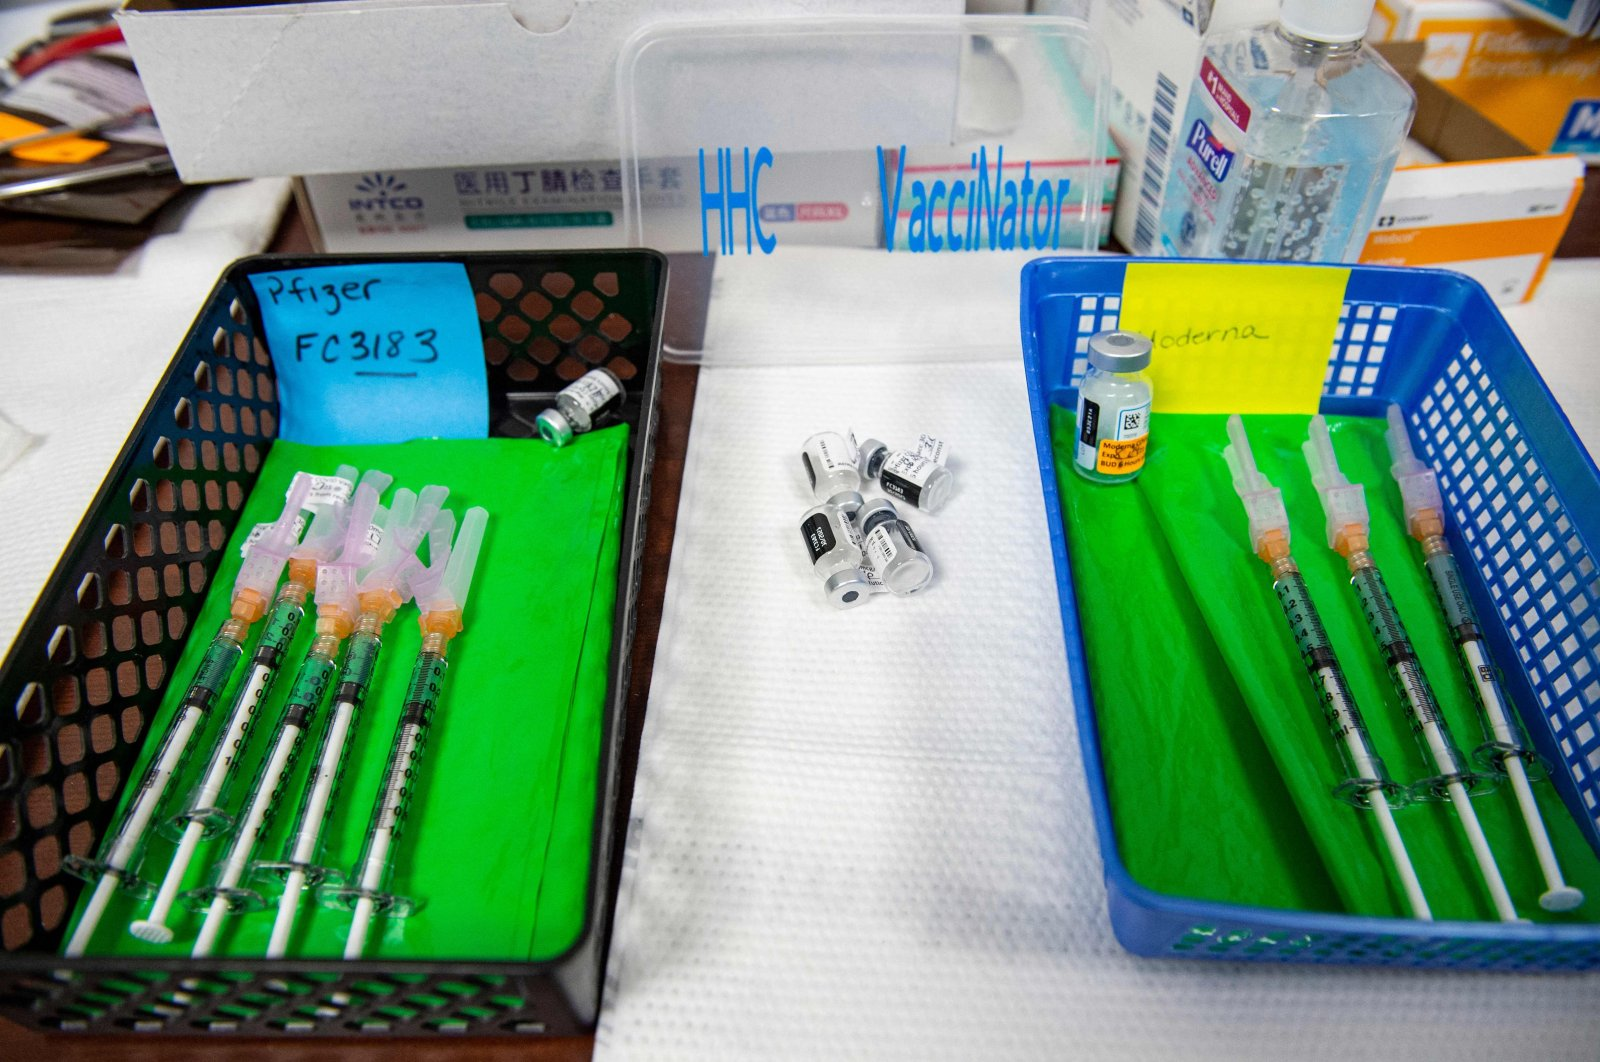 Pfizer-BioNTech's (L) andModerna'sCOVID-19 vaccines, both developed with mRNA technology,sit in baskets at the vaccine clinic at Hartford Hospital in Hartford, Connecticut, U.S., Aug. 24, 2021. (AFP Photo)